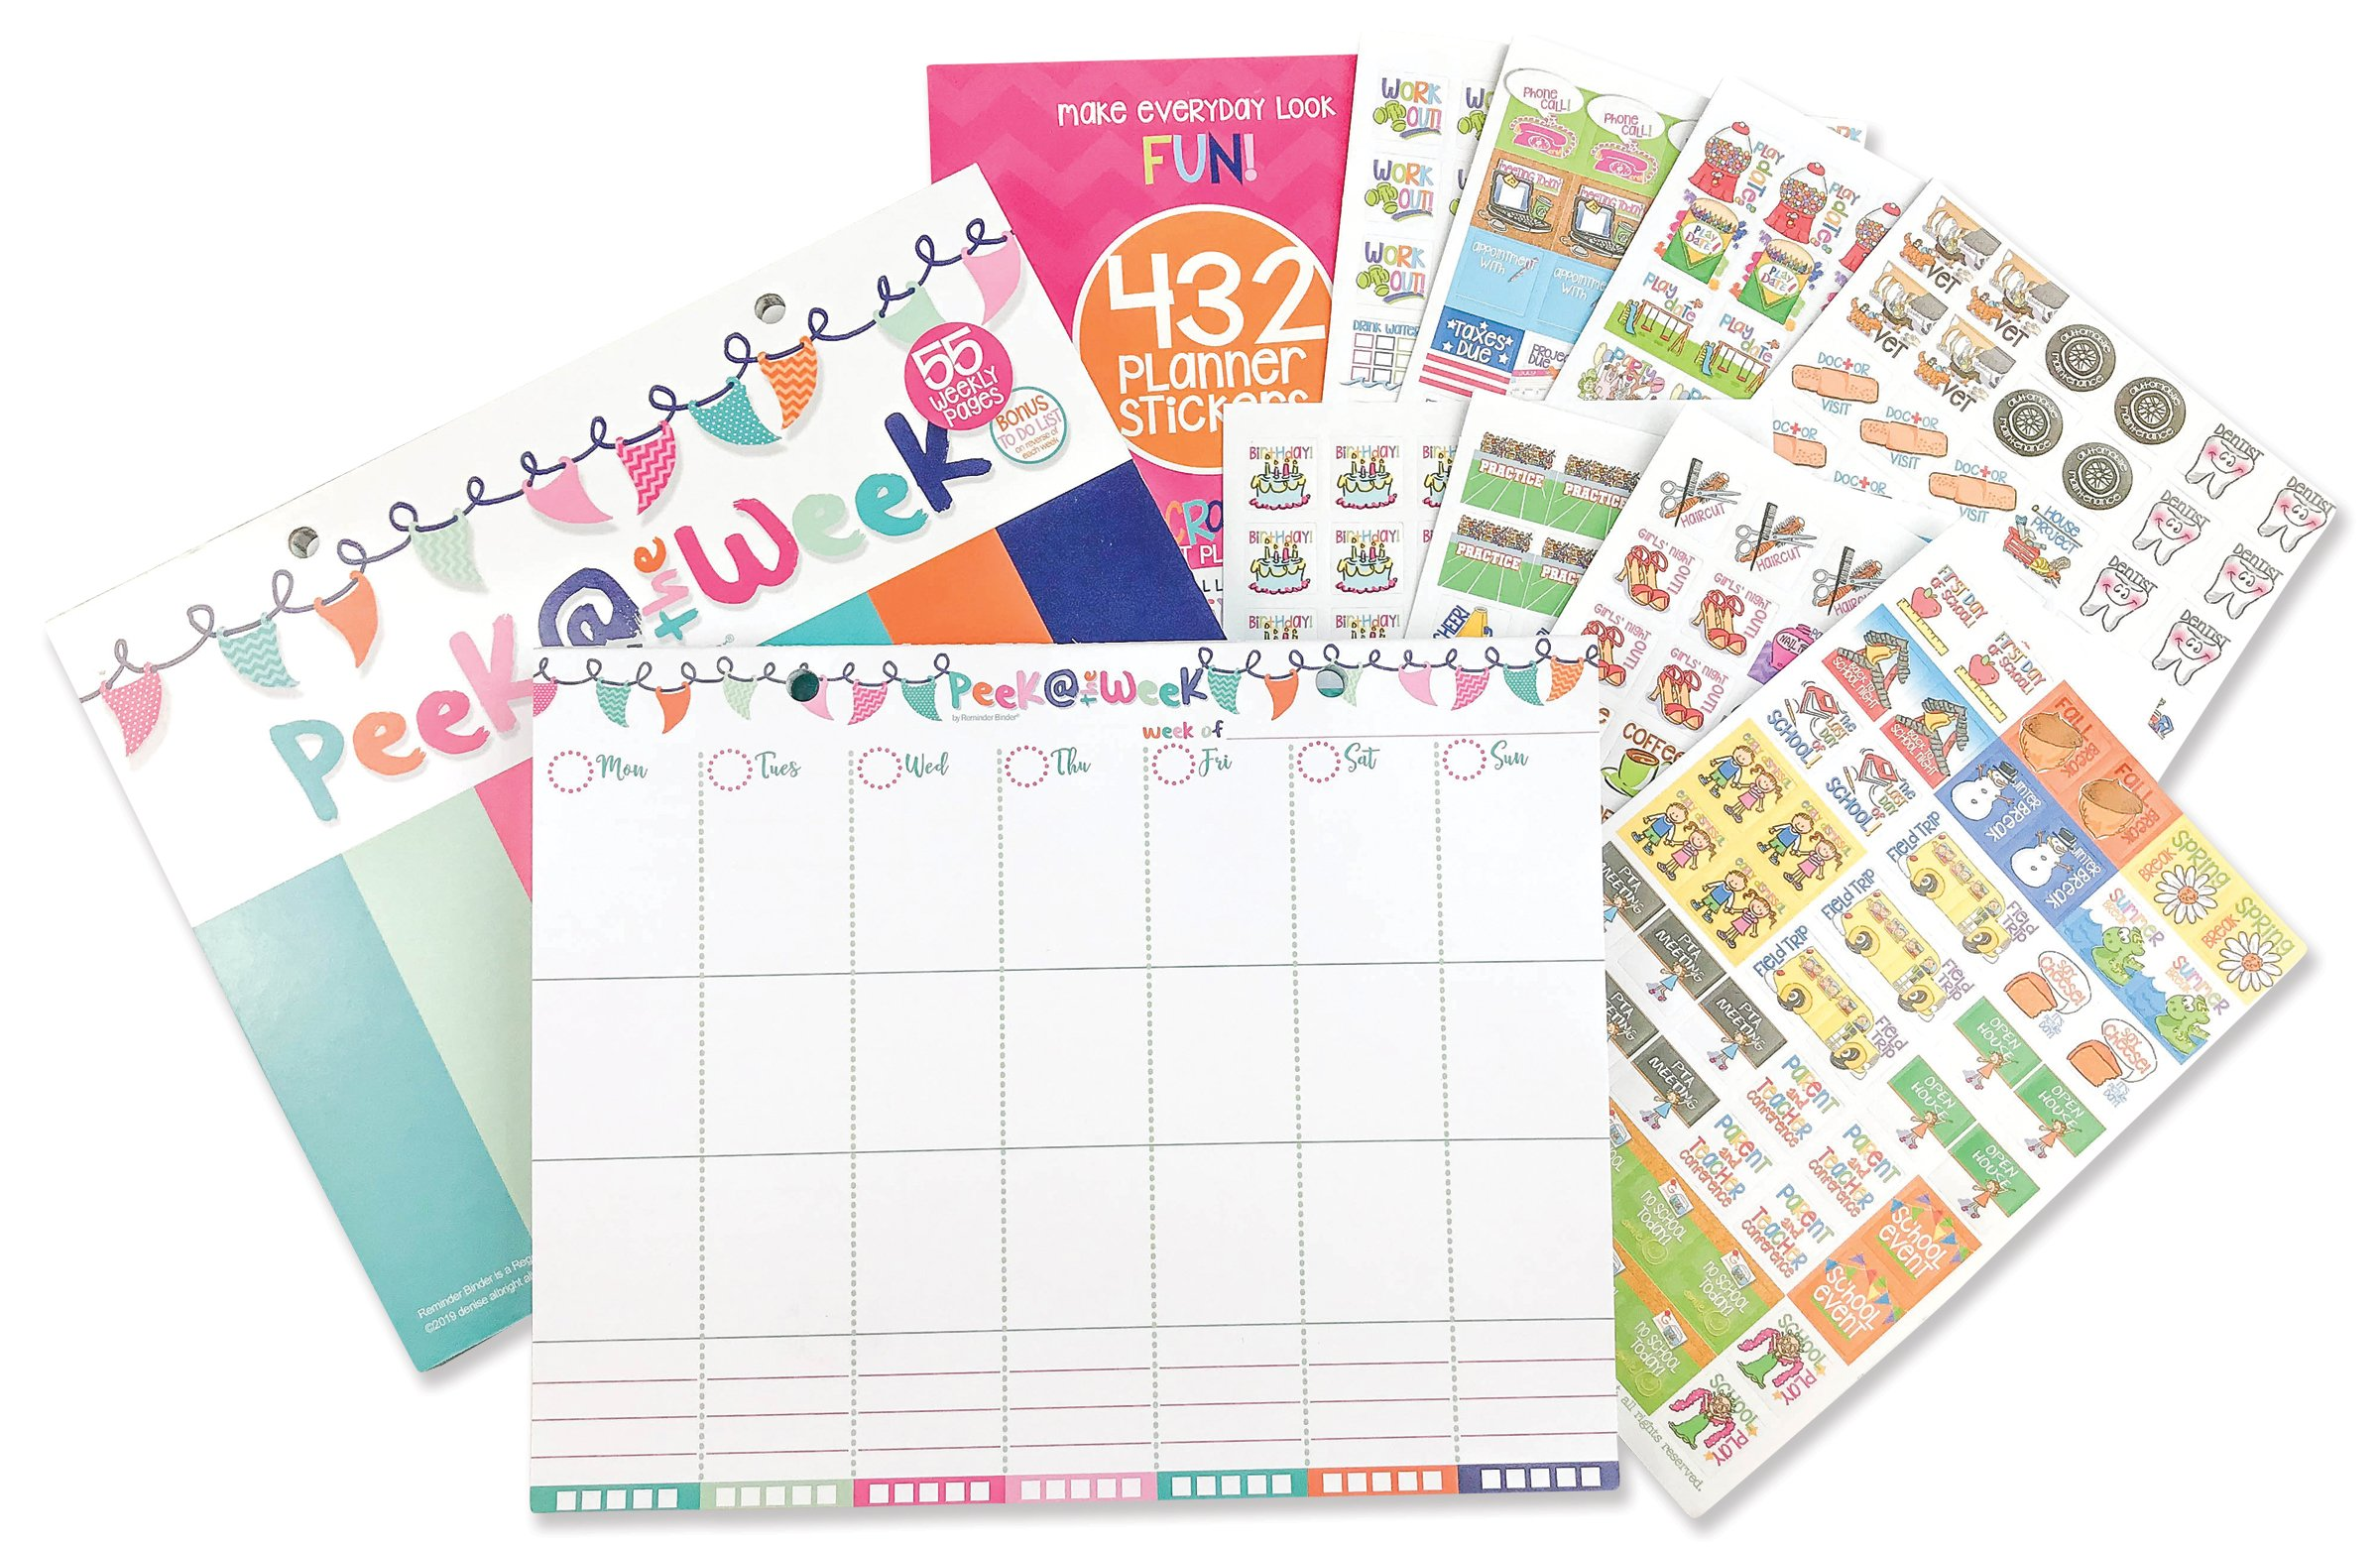 Weekly Planner Pad Bundle + Event Stickers Variety Sets (Total of 432 Stickers) Daily Vertical Layout, Tear Off to Do Lists, 8''x10'' 55-Pages Best for 2018 Planning & Organization (Bundle of 2 Items)